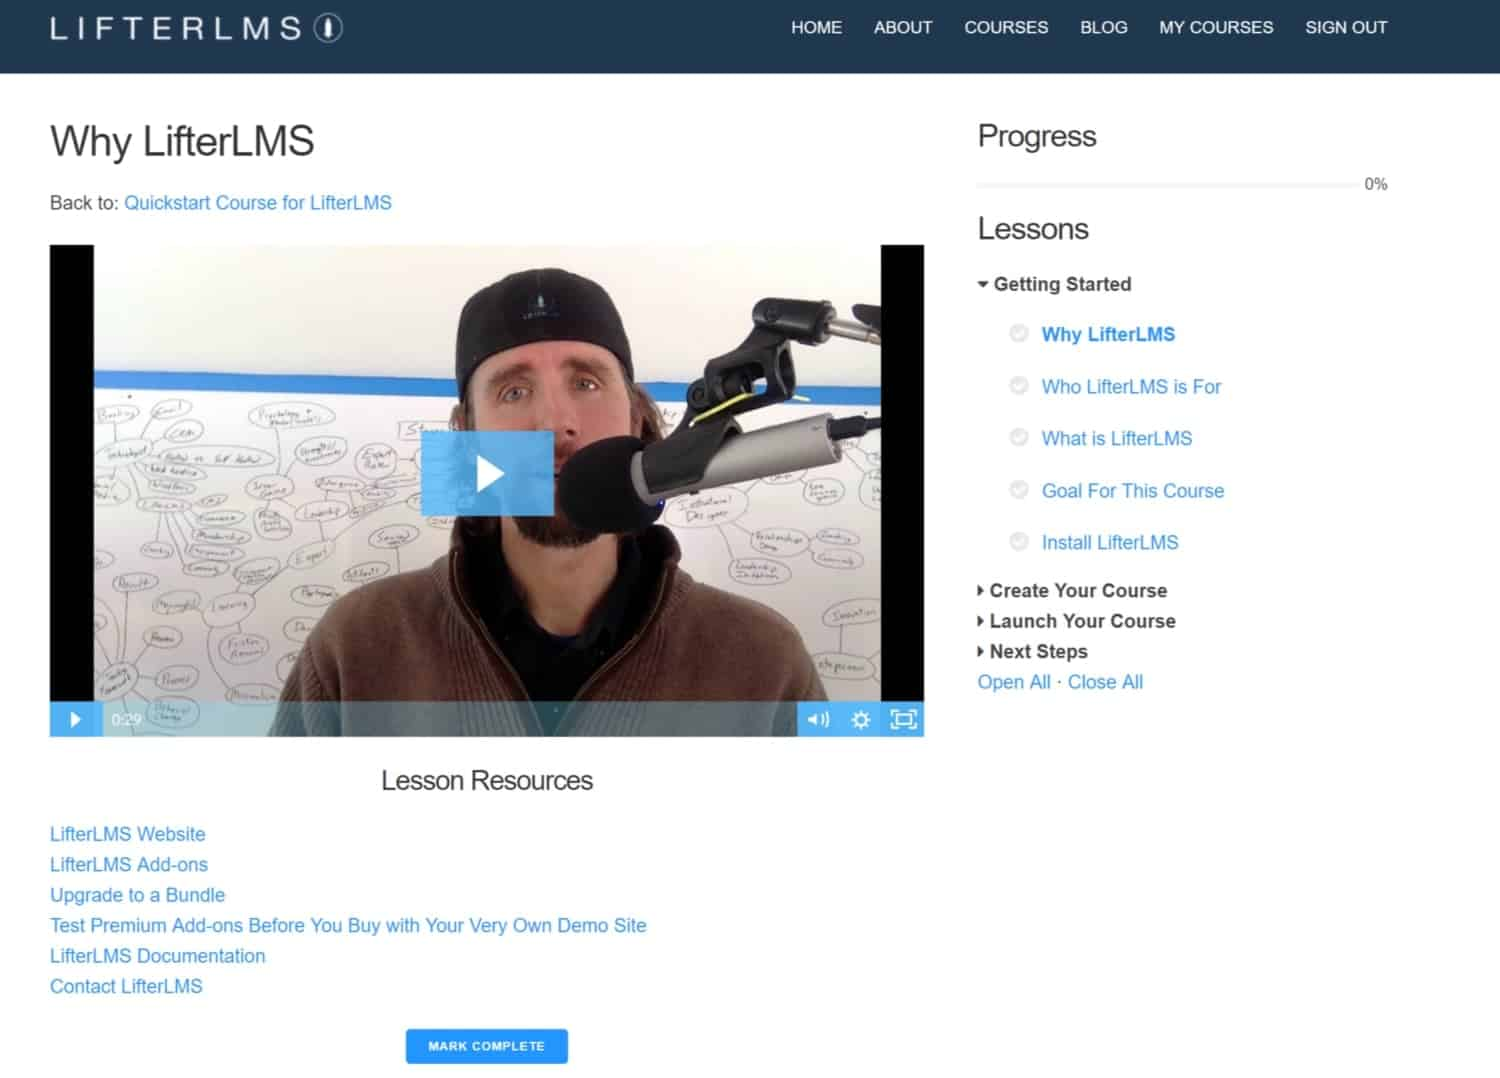 Screenshot of LifterLMS progress and lessons